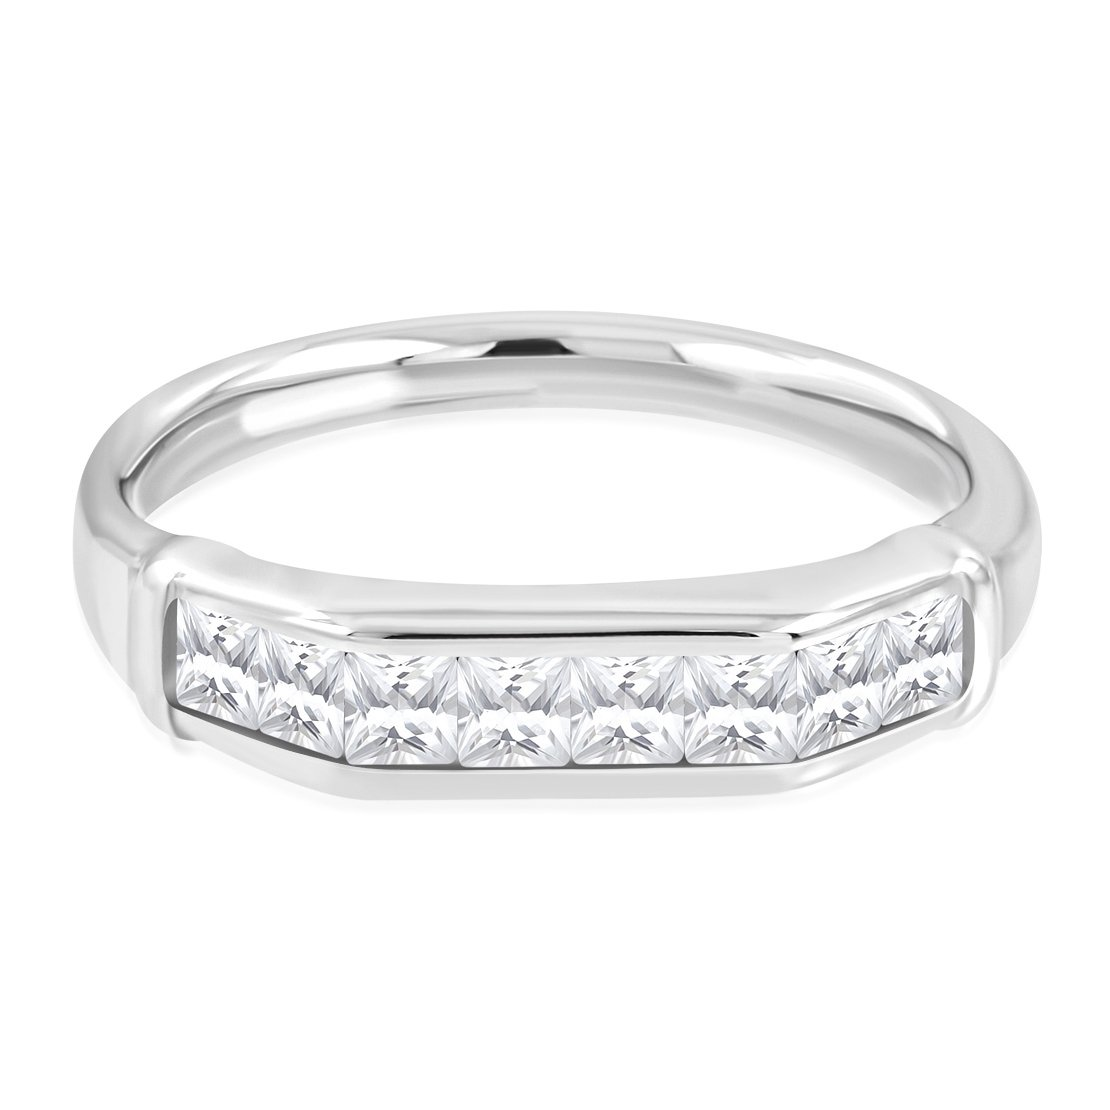 Stainless Steel Pave-Set Wedding Band Ring with Baguette Clear CZ